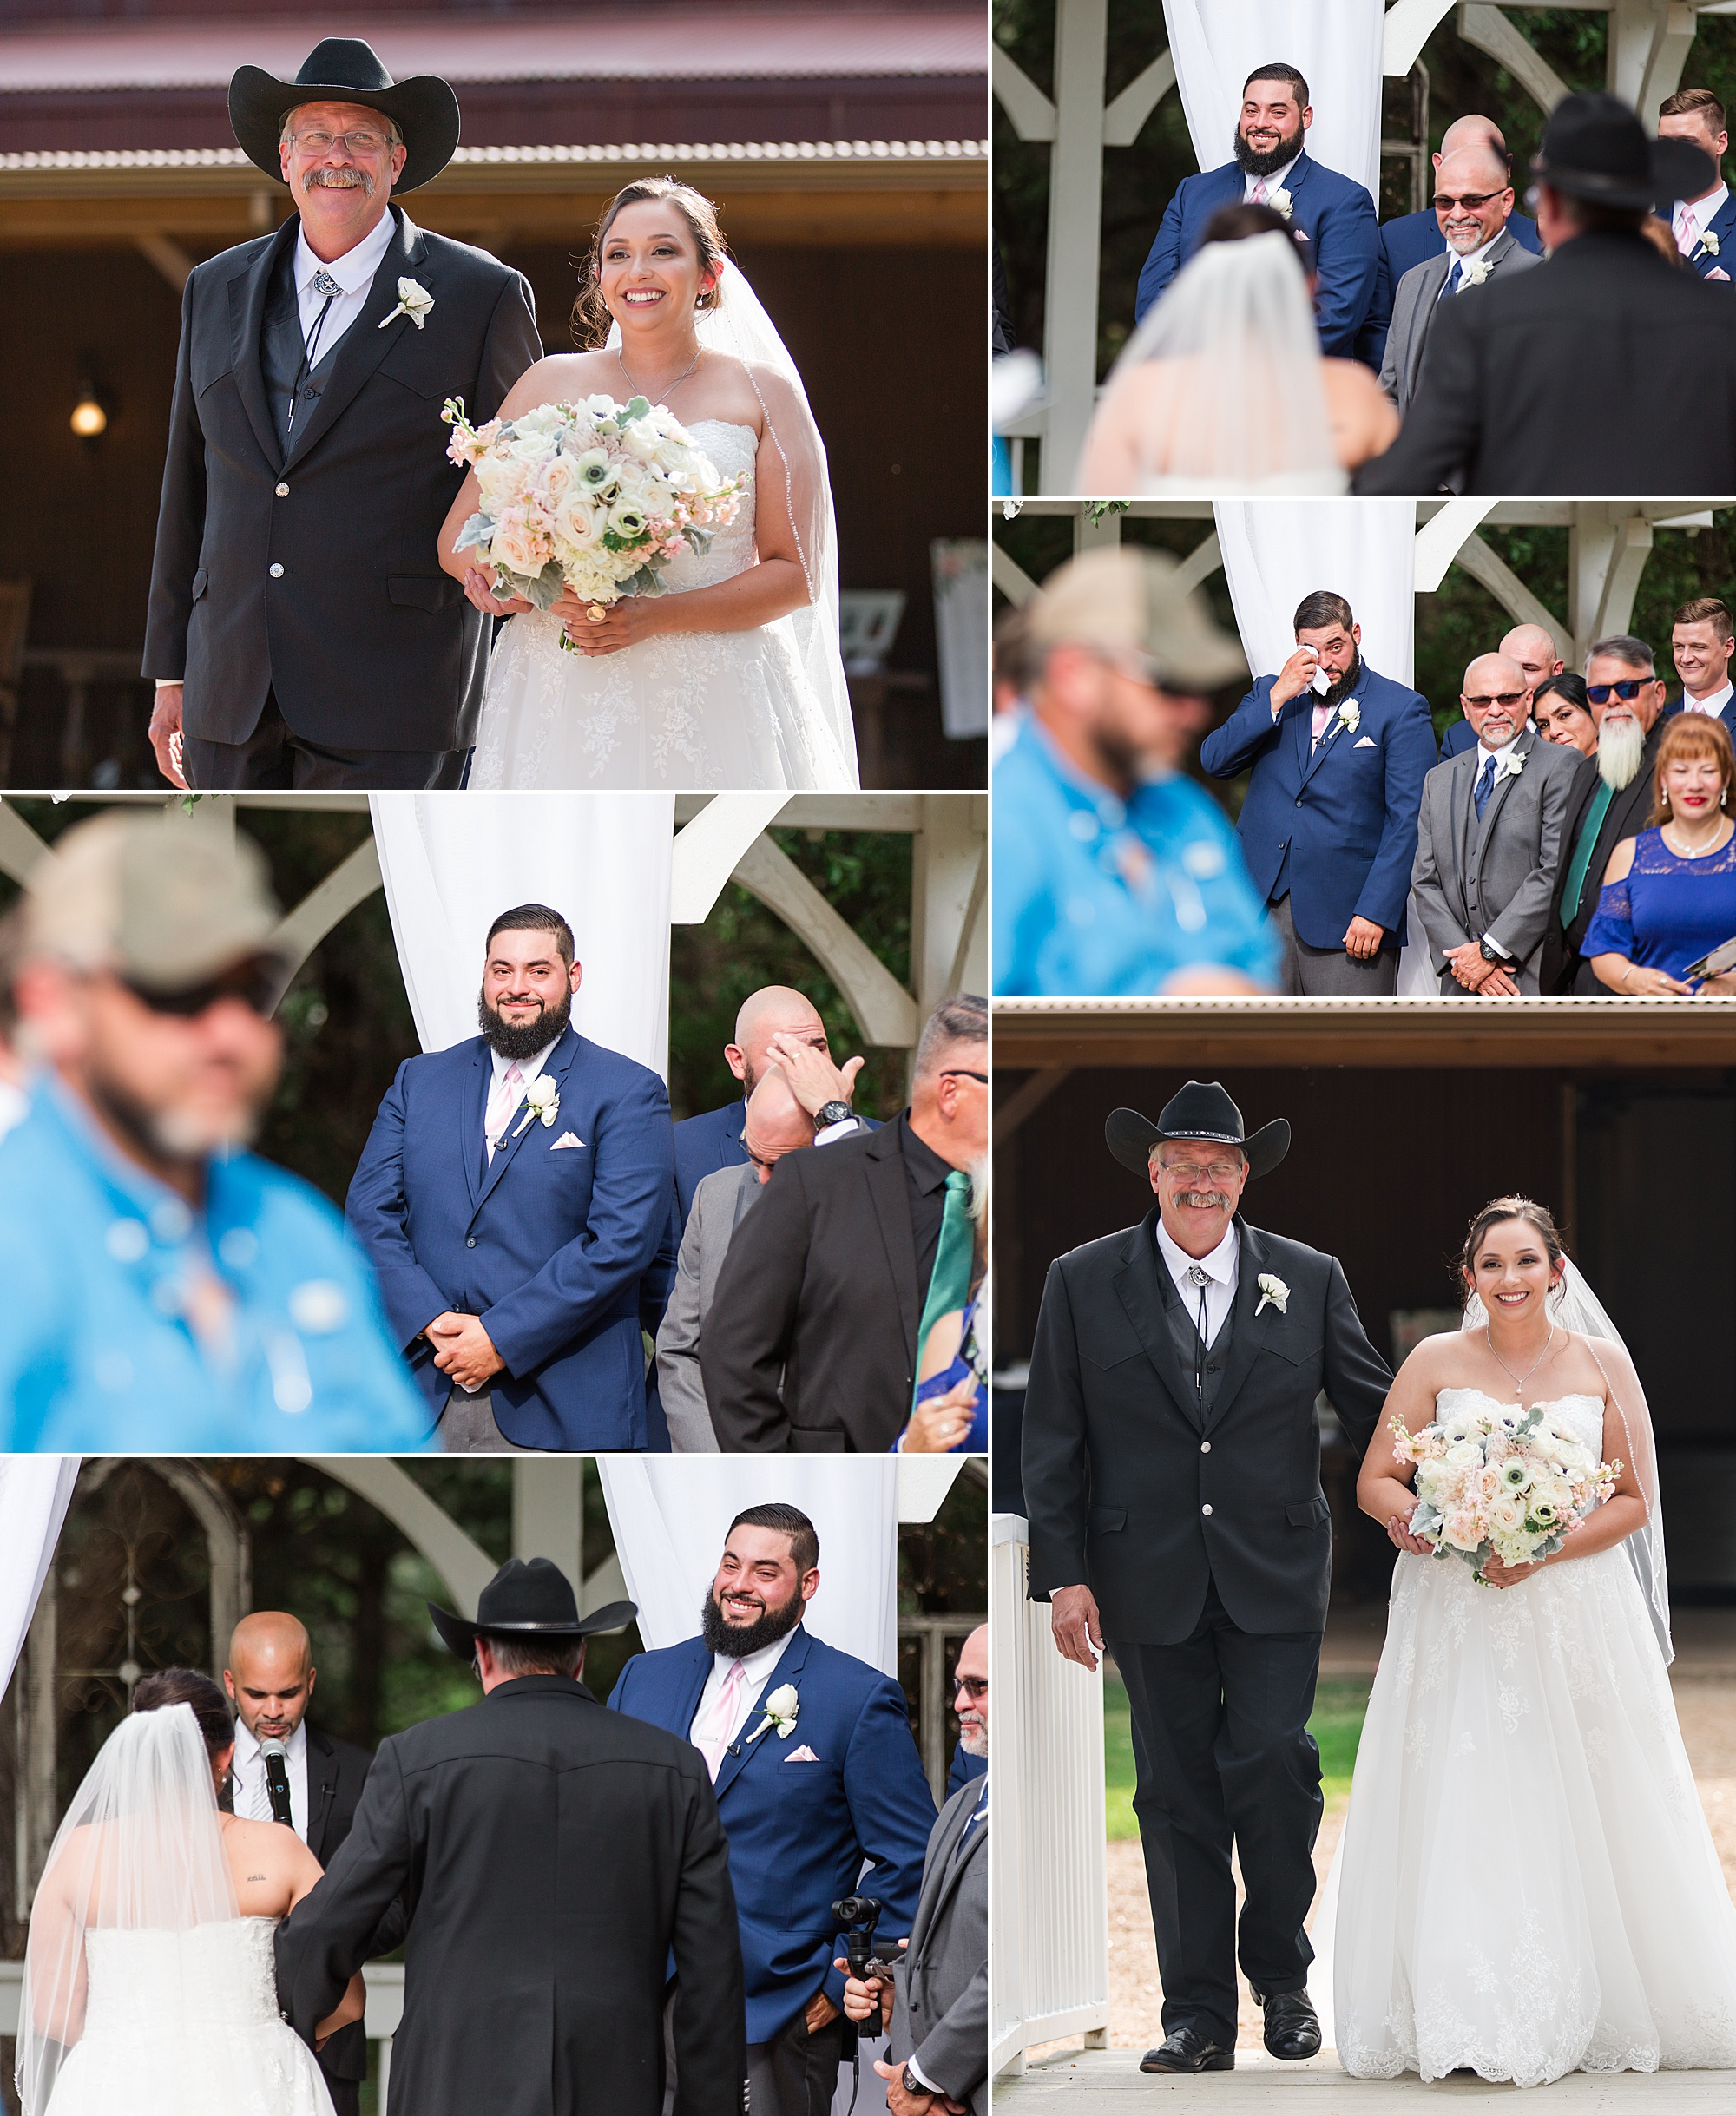 Wedding-Photographer-Bulverde-Texas-Western-Sky-Event-Venue-Carly-Barton-Photography_0040.jpg